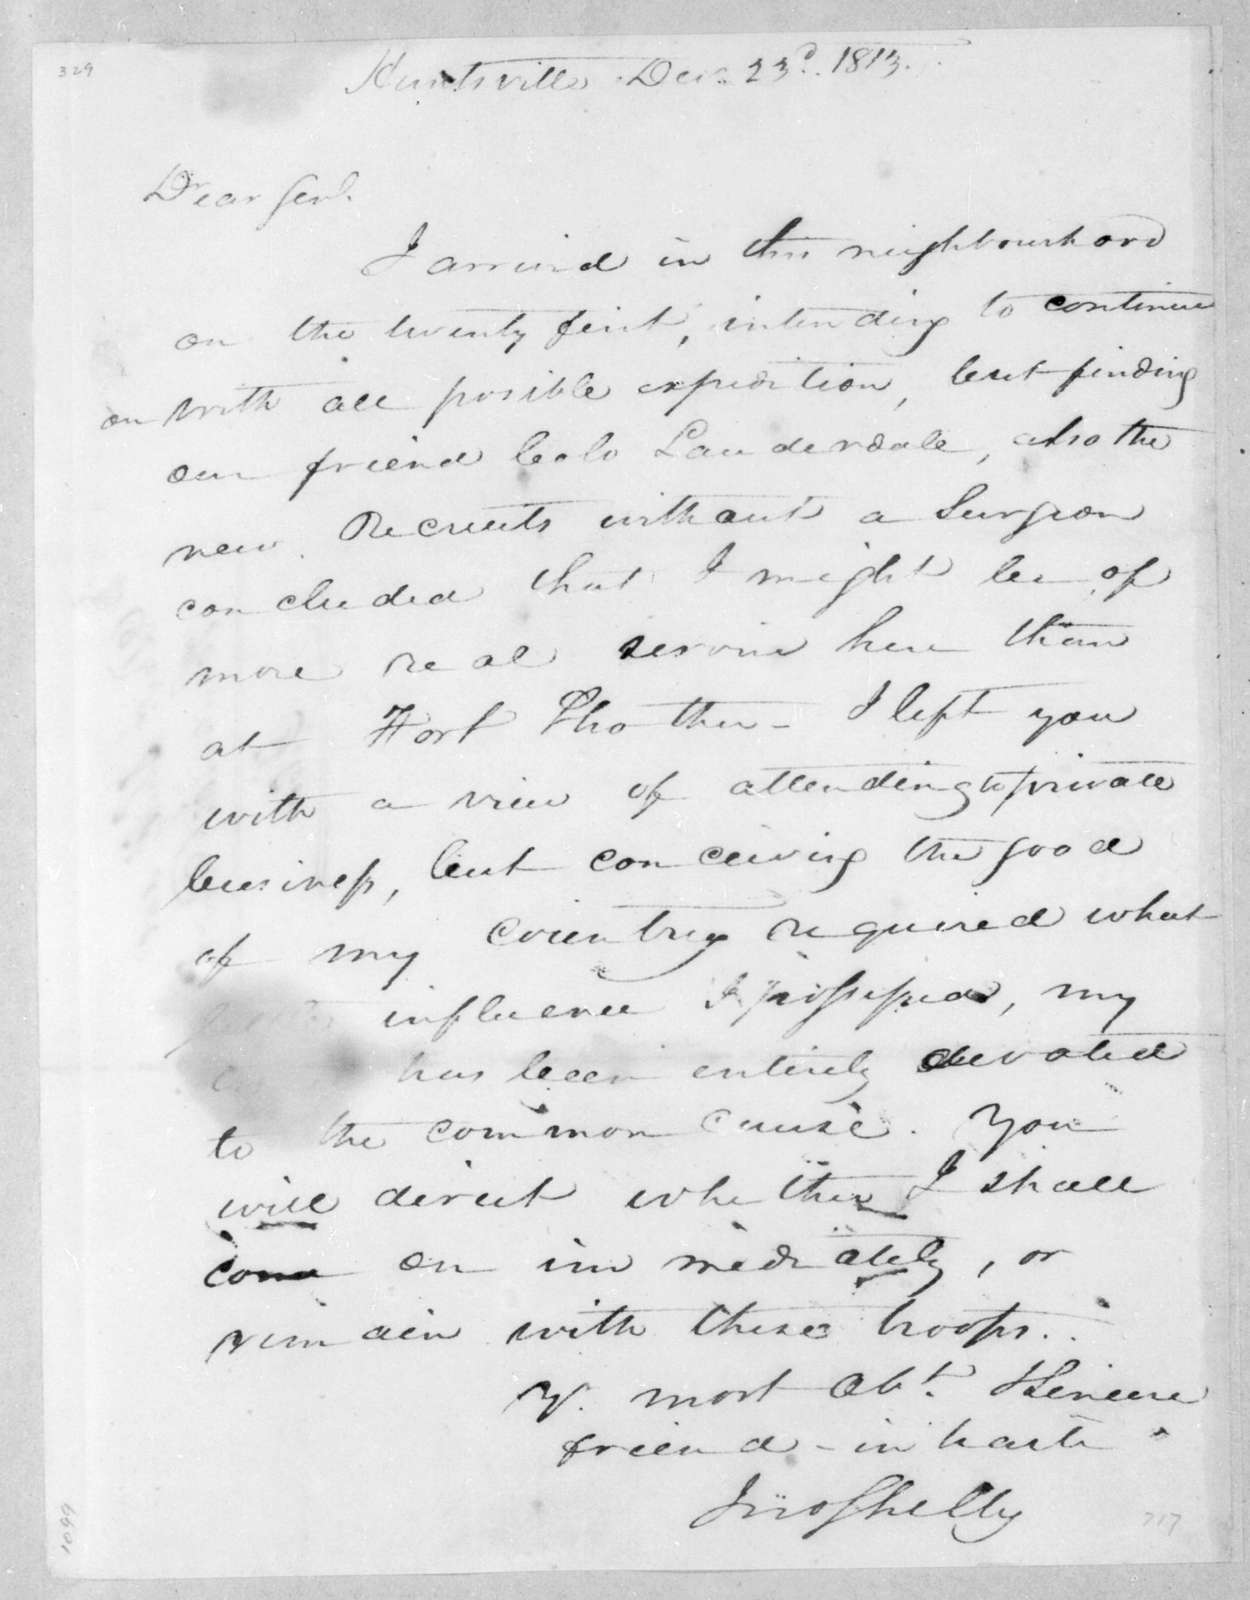 John Shelby to Andrew Jackson, December 23, 1813